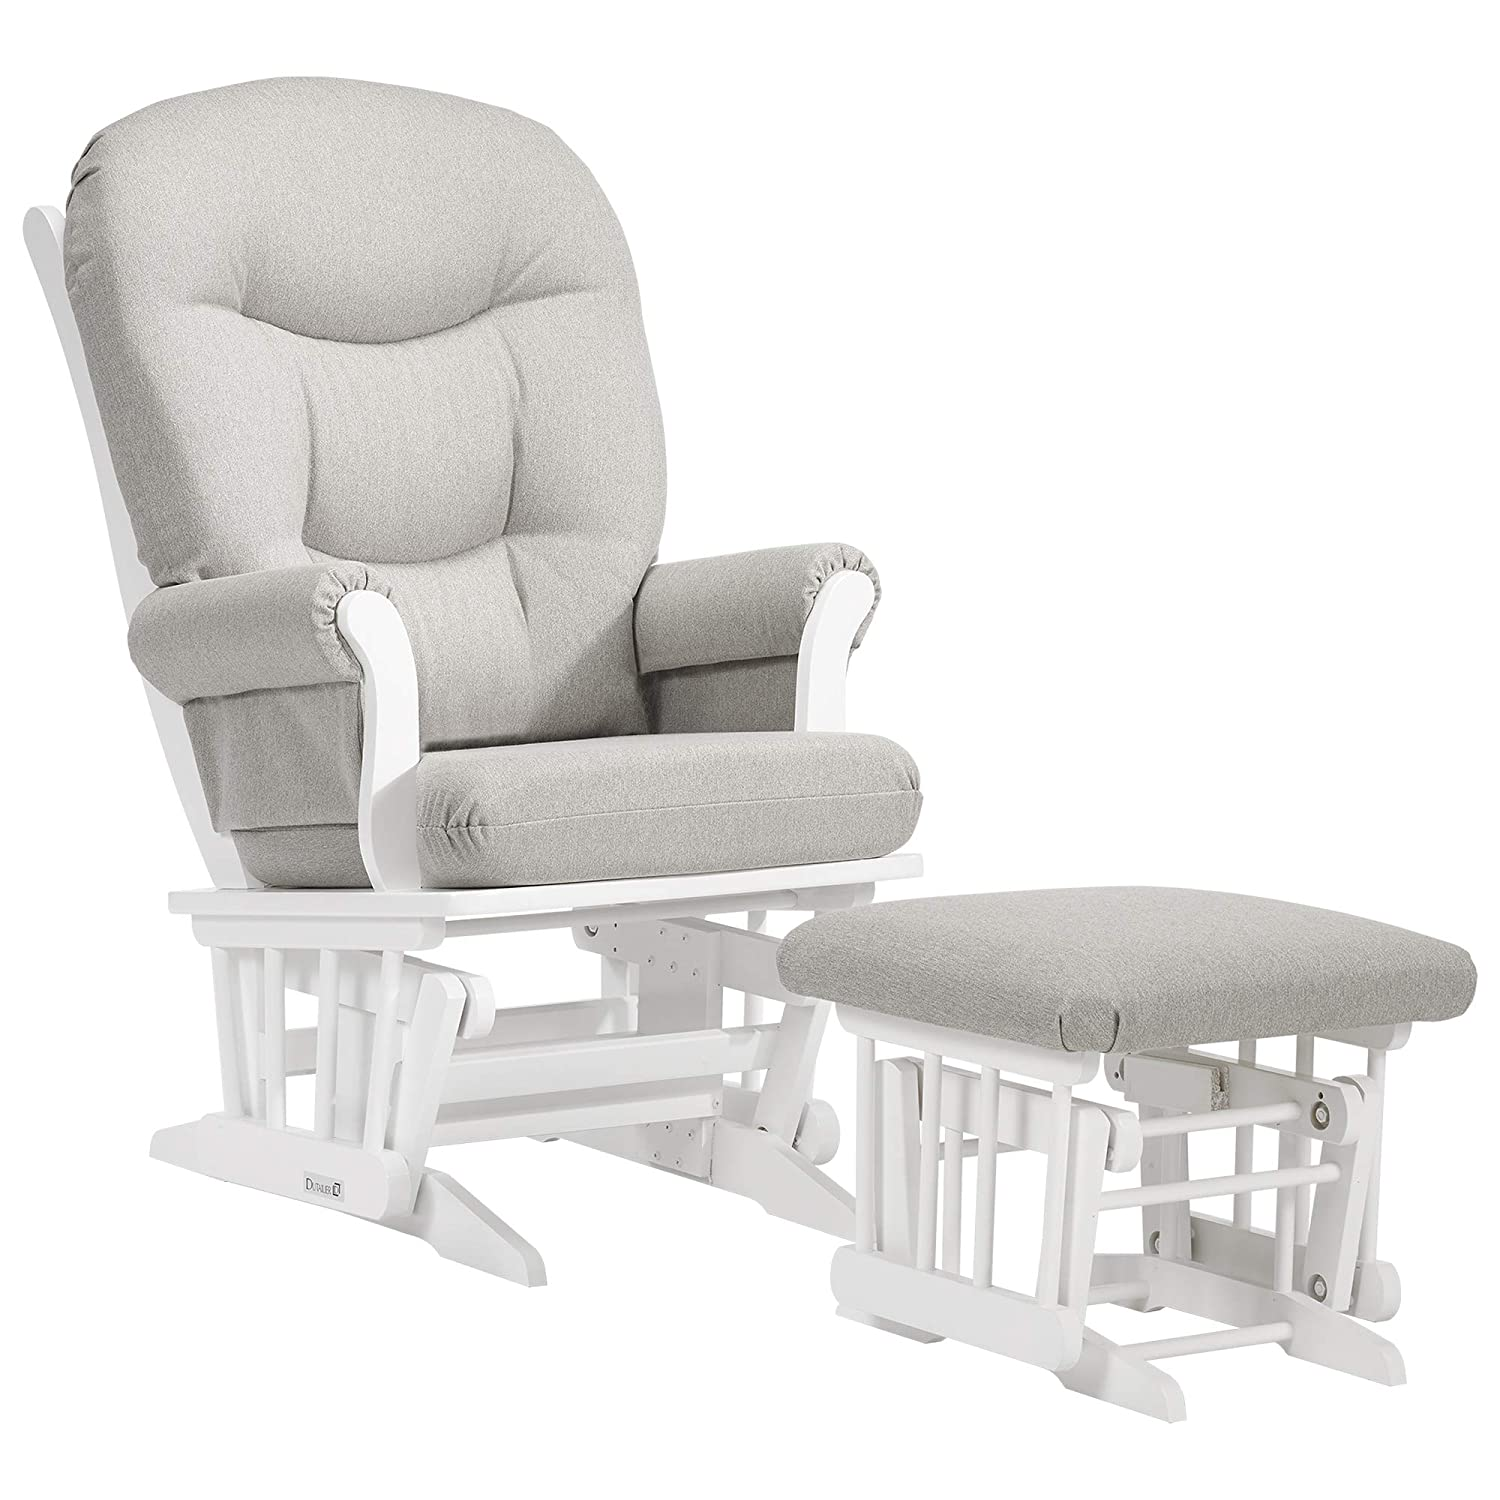 Amazon Com Dutailier Adèle Glider Chair And Ottoman Set White Light Grey Baby